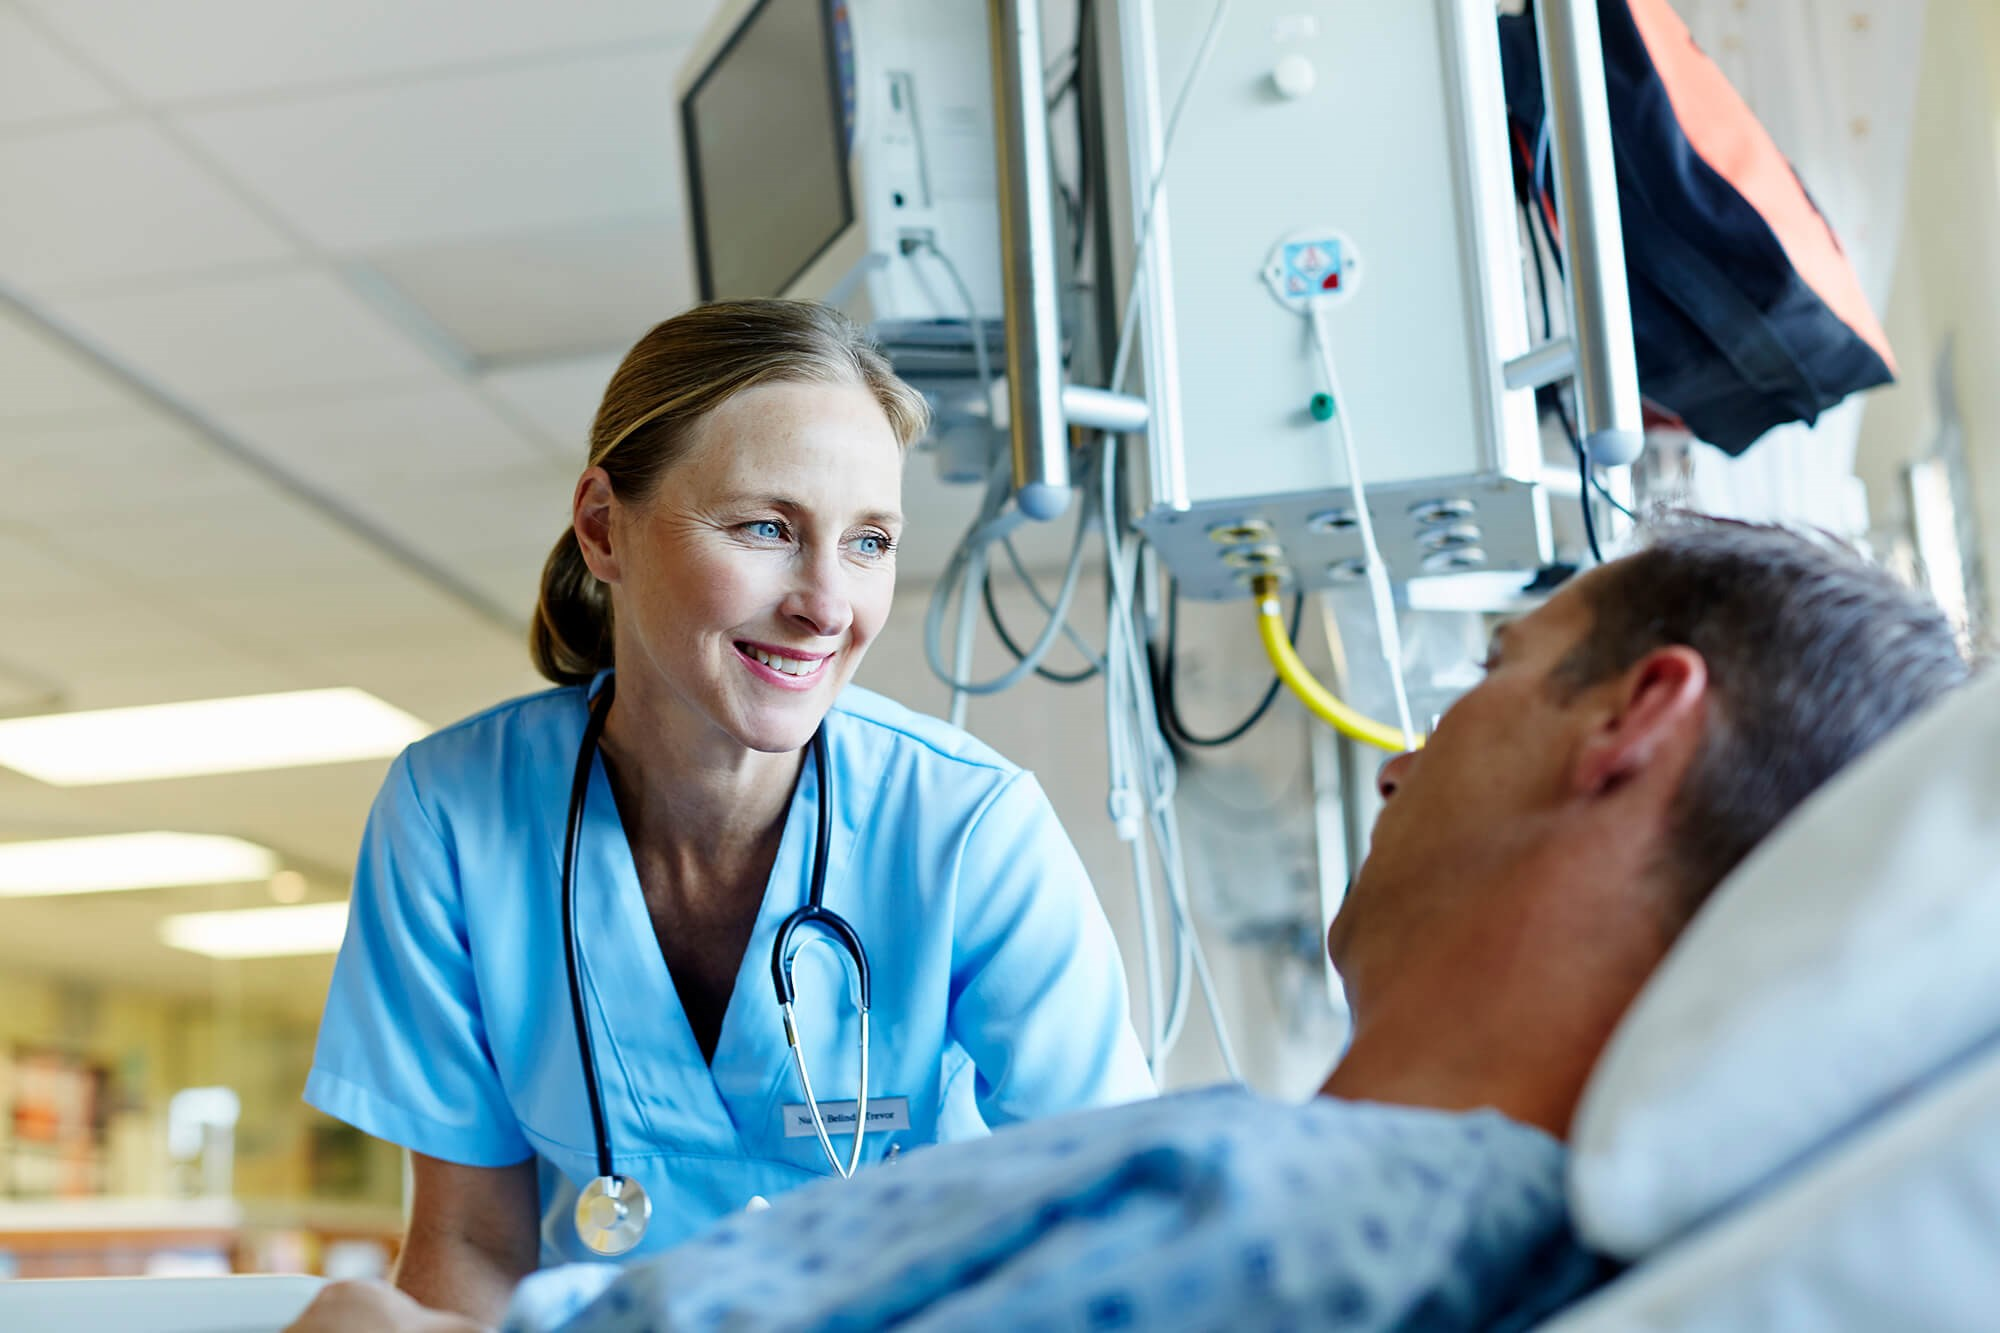 Patients Report on Benefits of Adherence to an Early Recovery Plan Following Colorectal Surgery